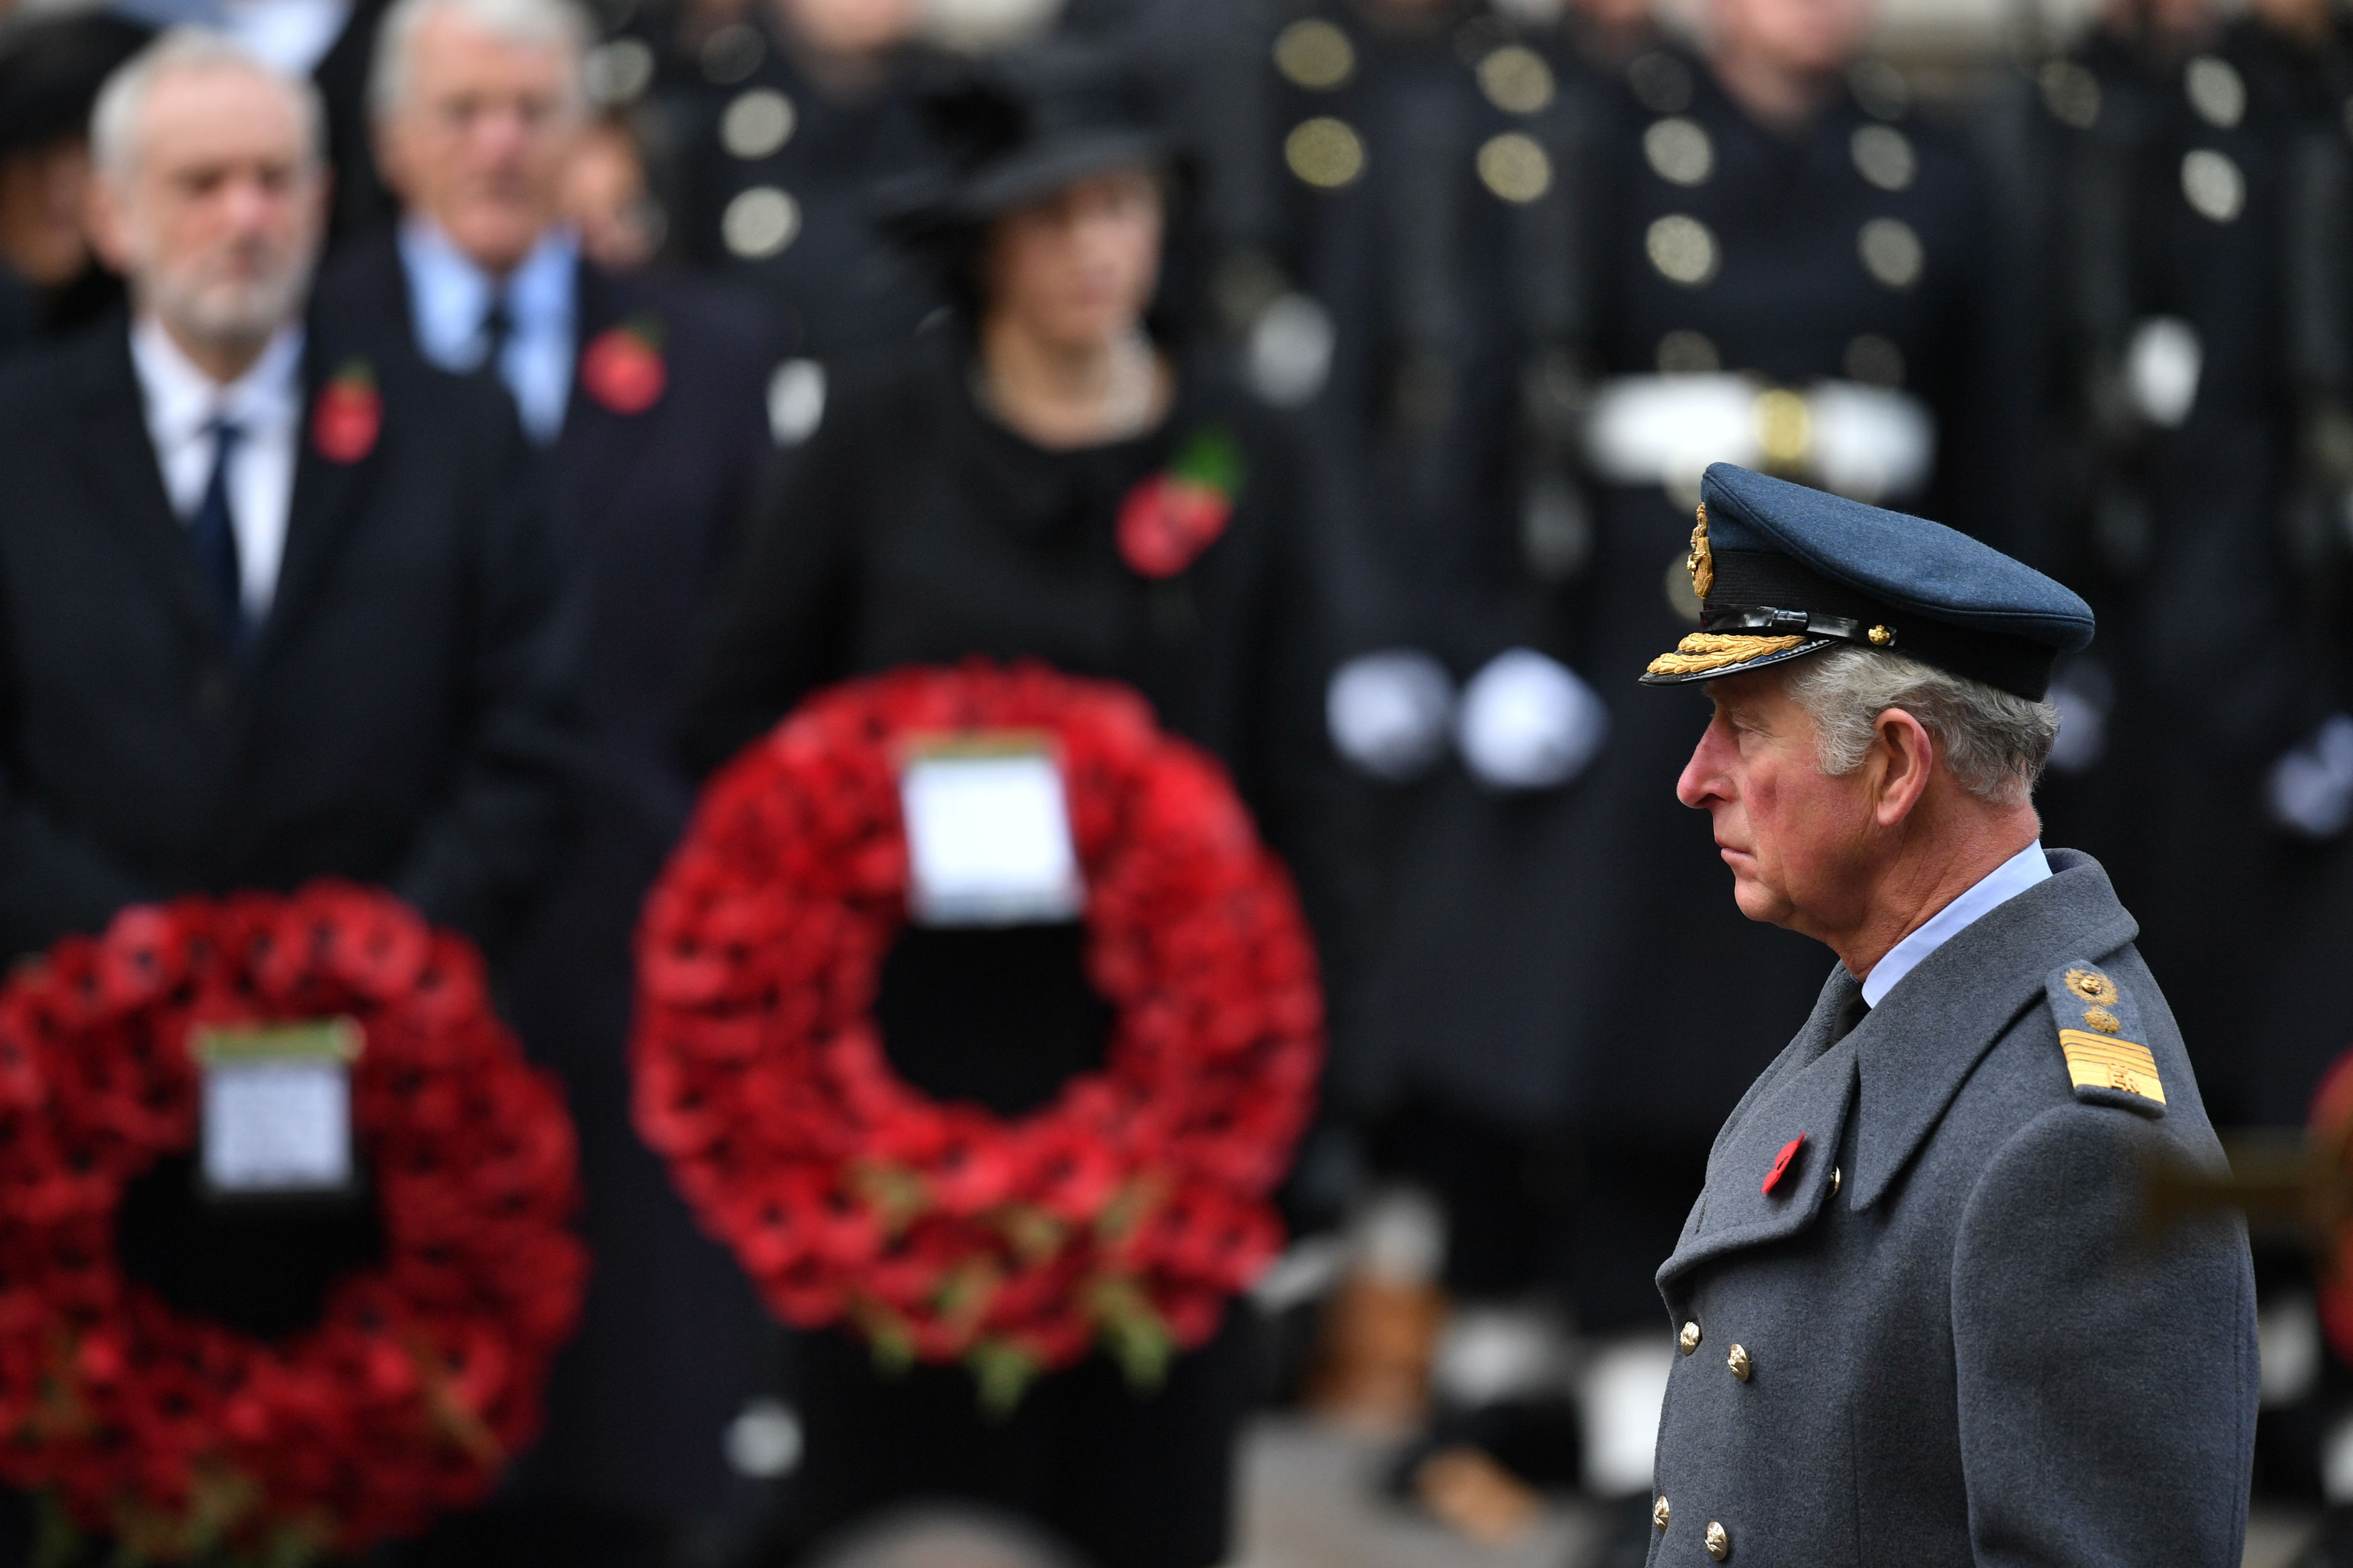 The Prince of Wales at the Cenotaph